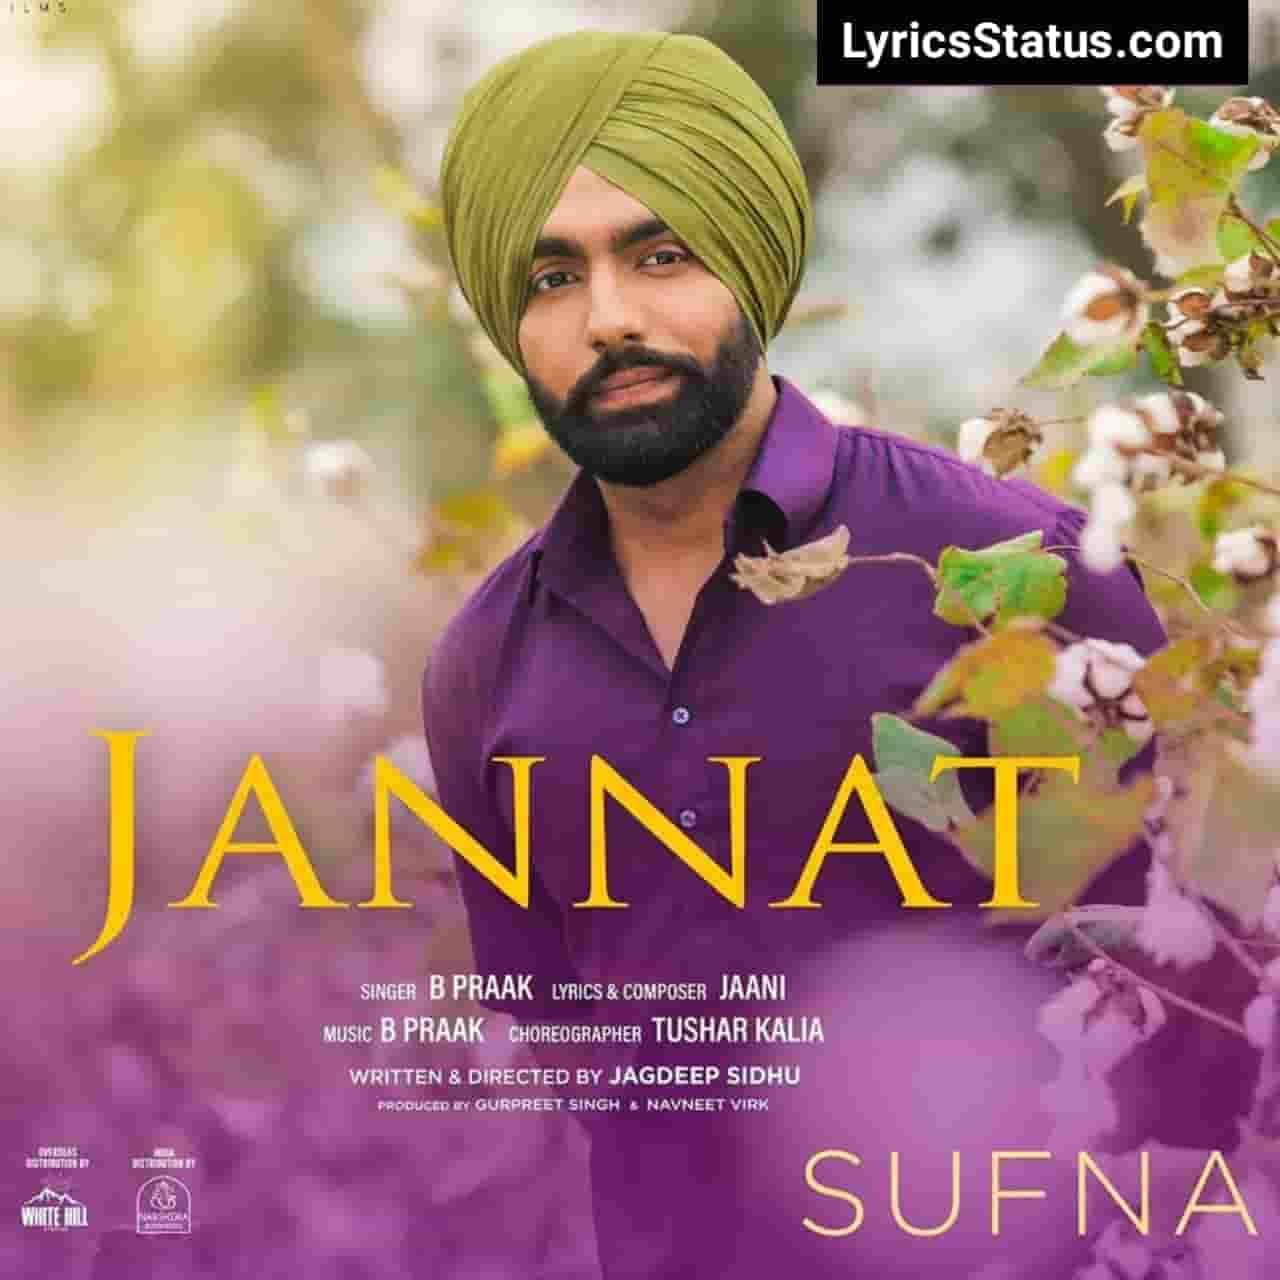 Jaani Ammy Virk Jannat B Praak Lyrics Status Download Video Teri har cheez jannat ae Ho jannat ae tera hasna New punjabi song Jannat of B Praak